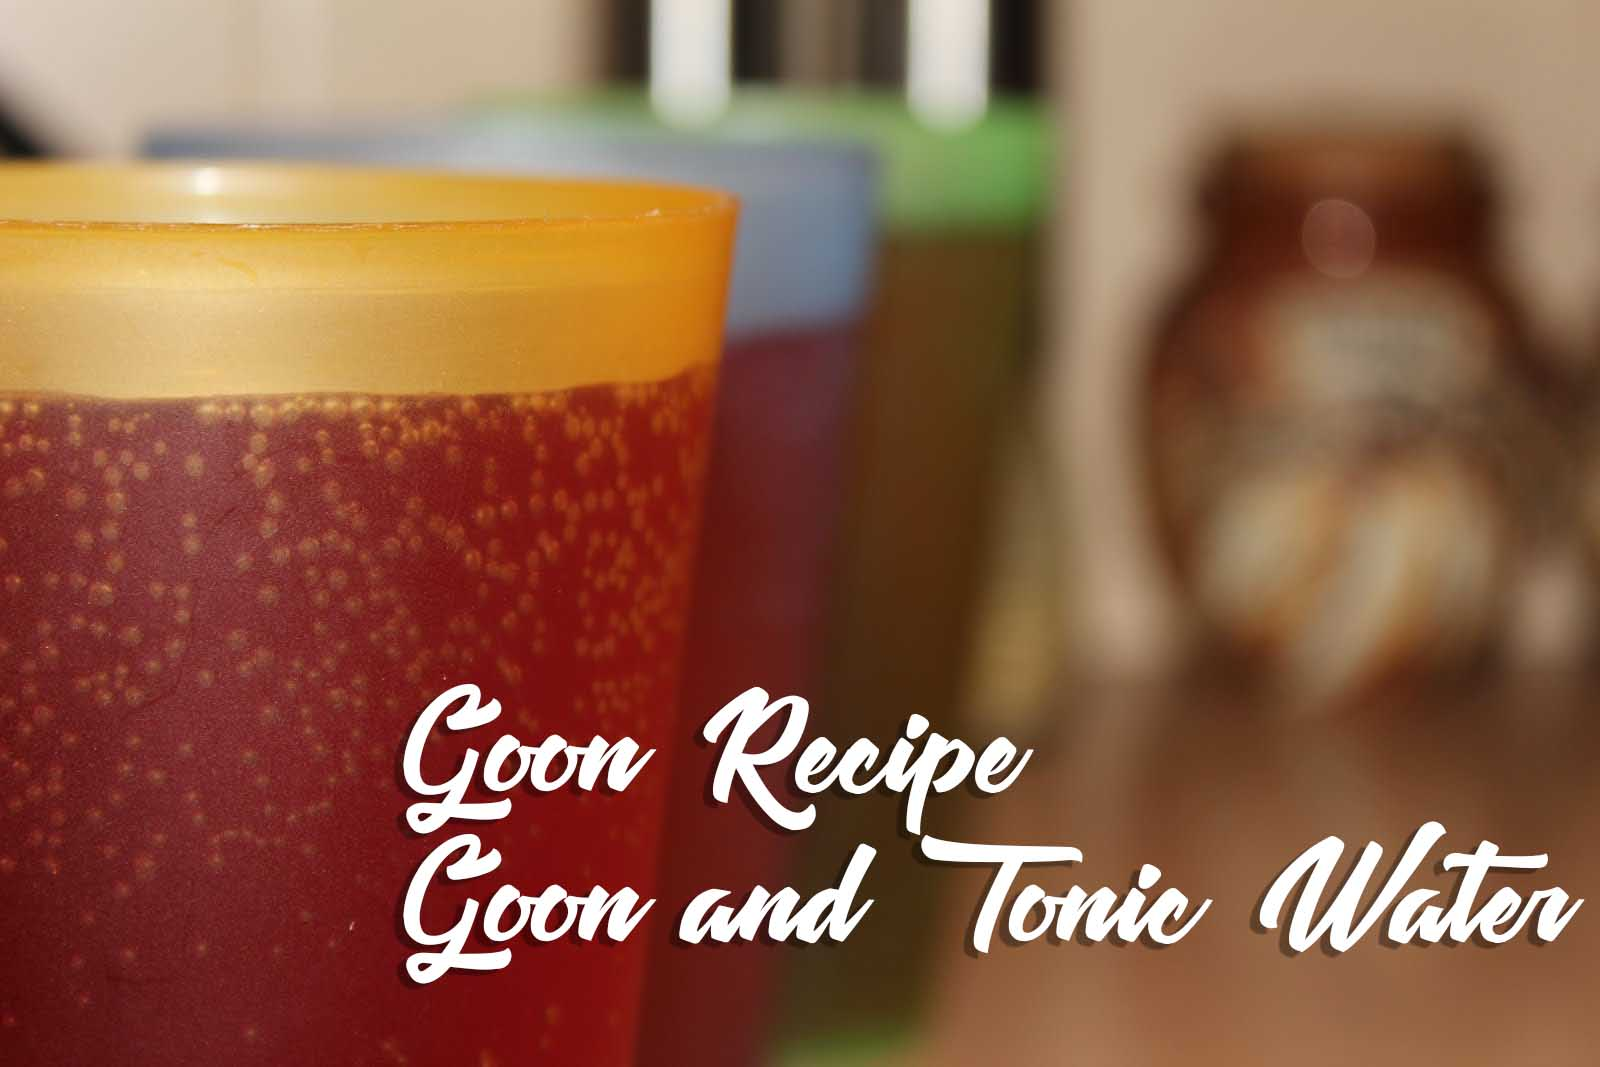 Goon_(Box_Wine)_and_Tonic_Water_Goon_Recipe